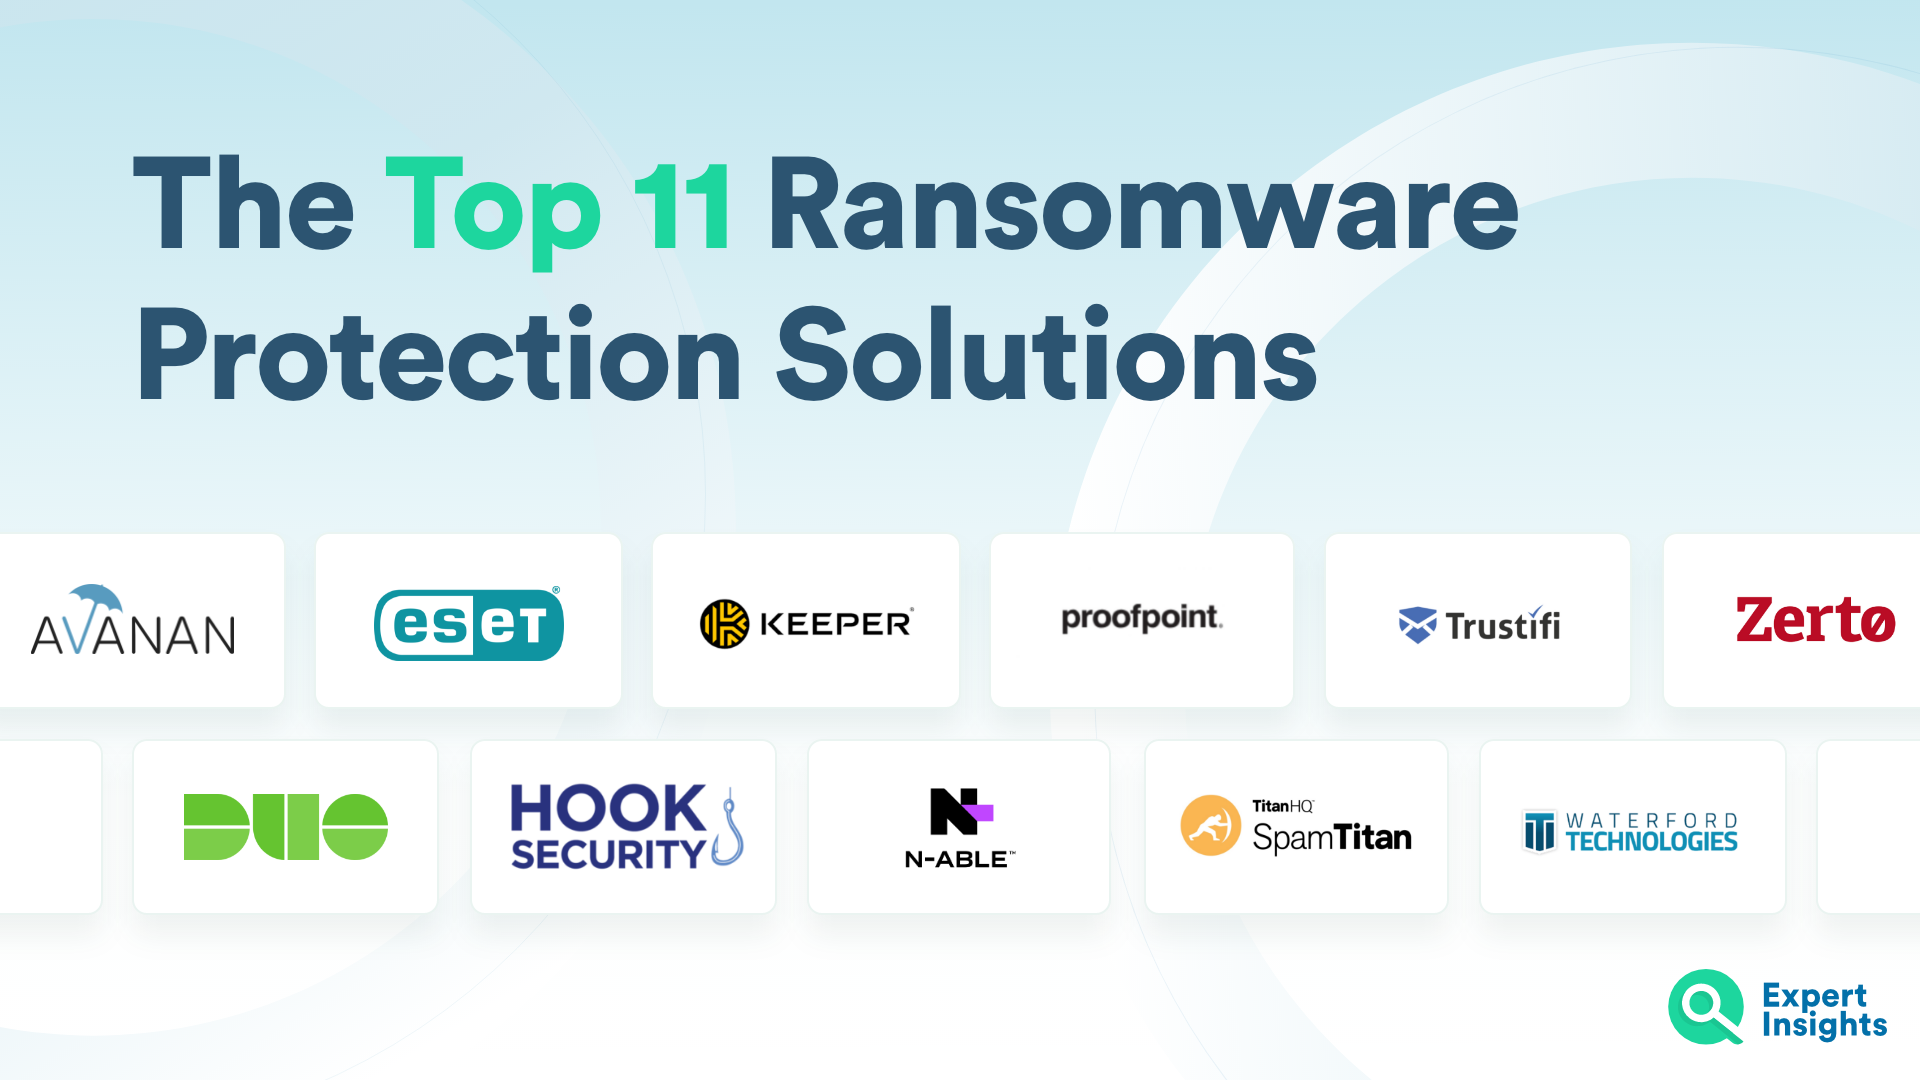 Top 11 Ransomware Protection Solutions